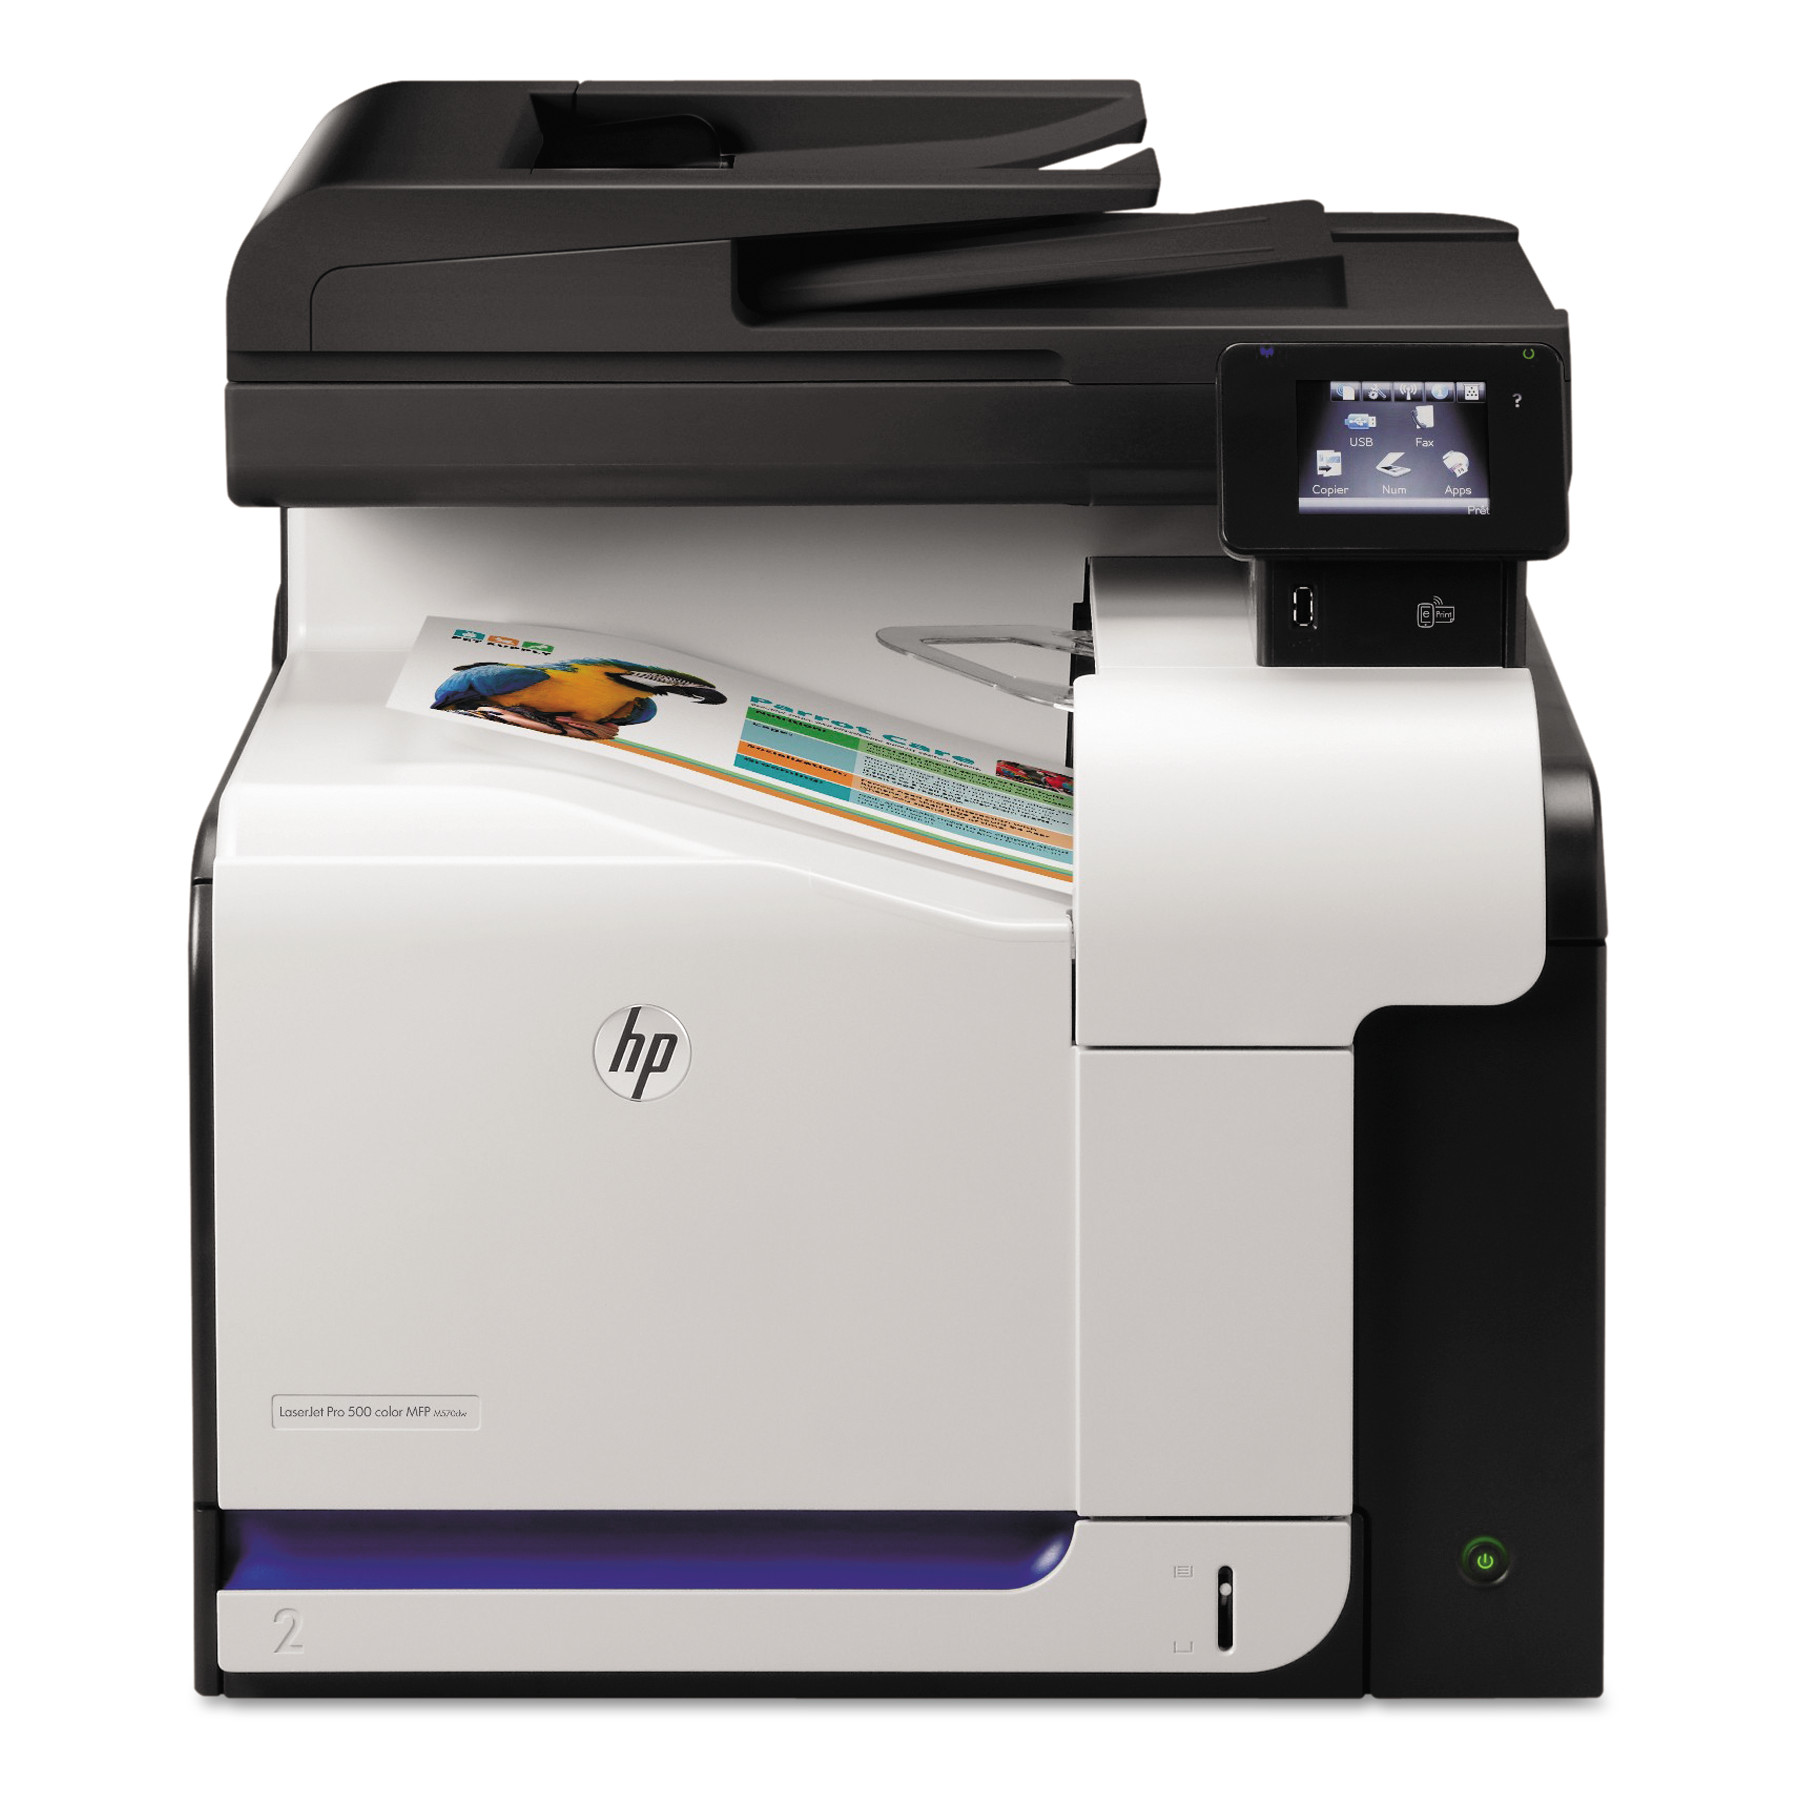 HP LaserJet Pro 500 Color MFP M570dn Laser Printer, Copy/Fax/Print/Scan